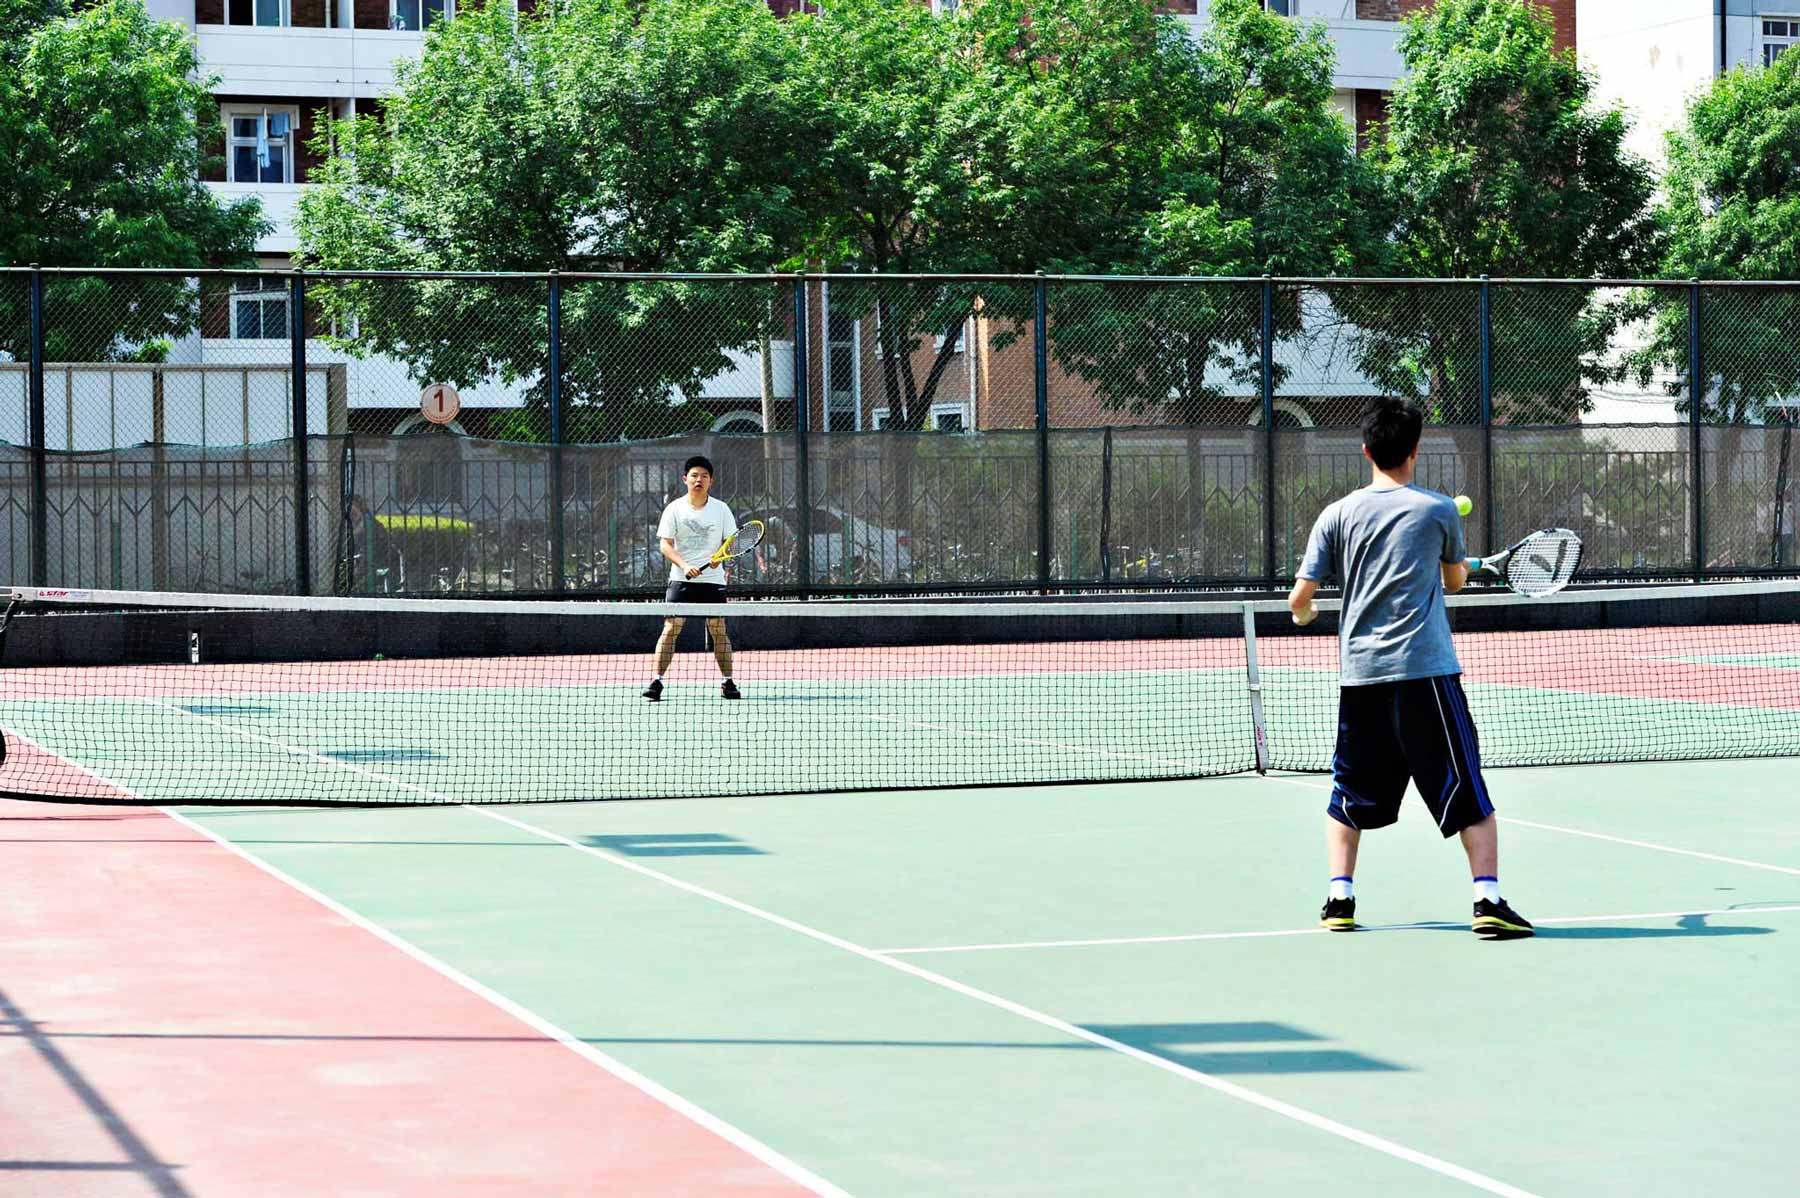 There are indoor and outdoor sports courts